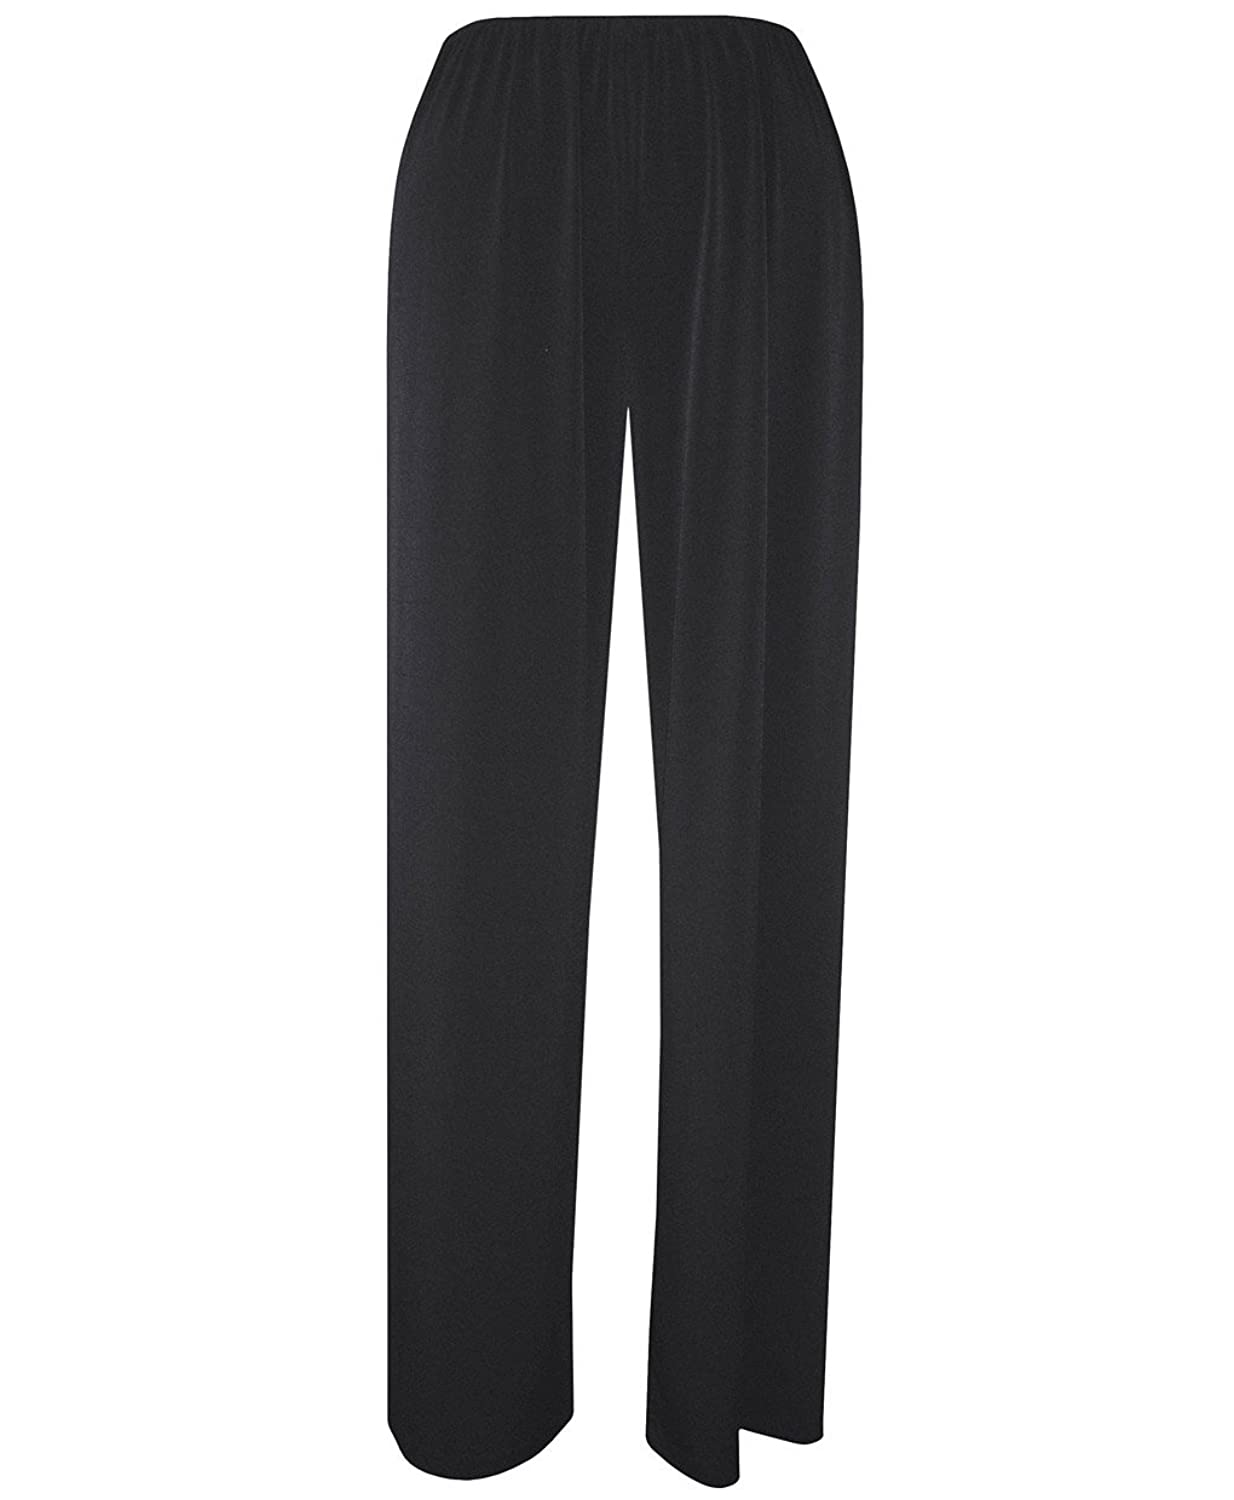 Alex Evenings 235053, Comfortable Wide Leg Evening Pants With Stretch Waist